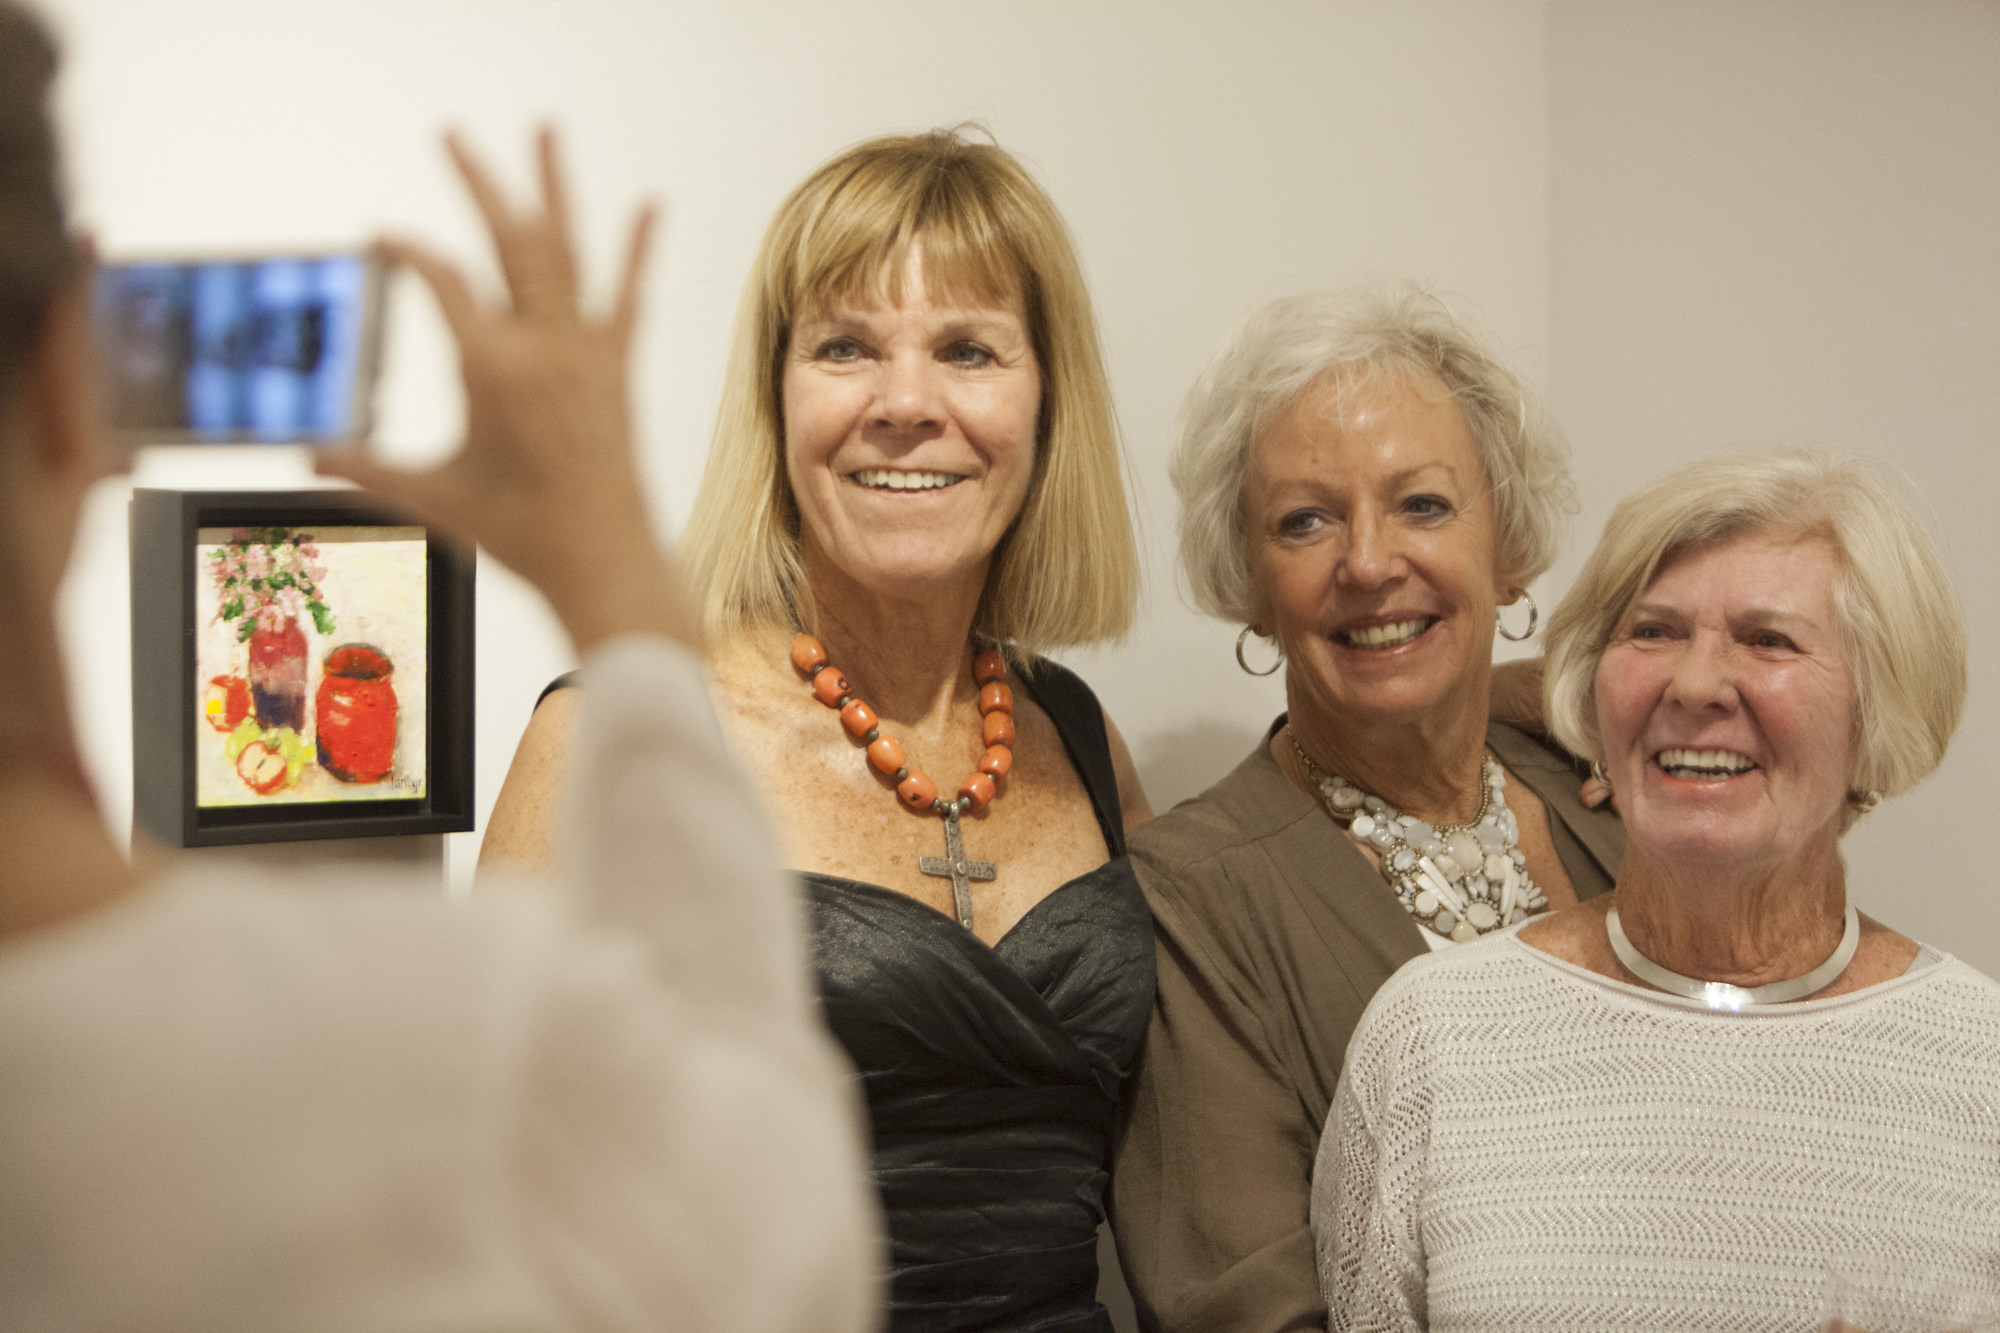 Jan Cyr and Friends at 8/27 opening Reception